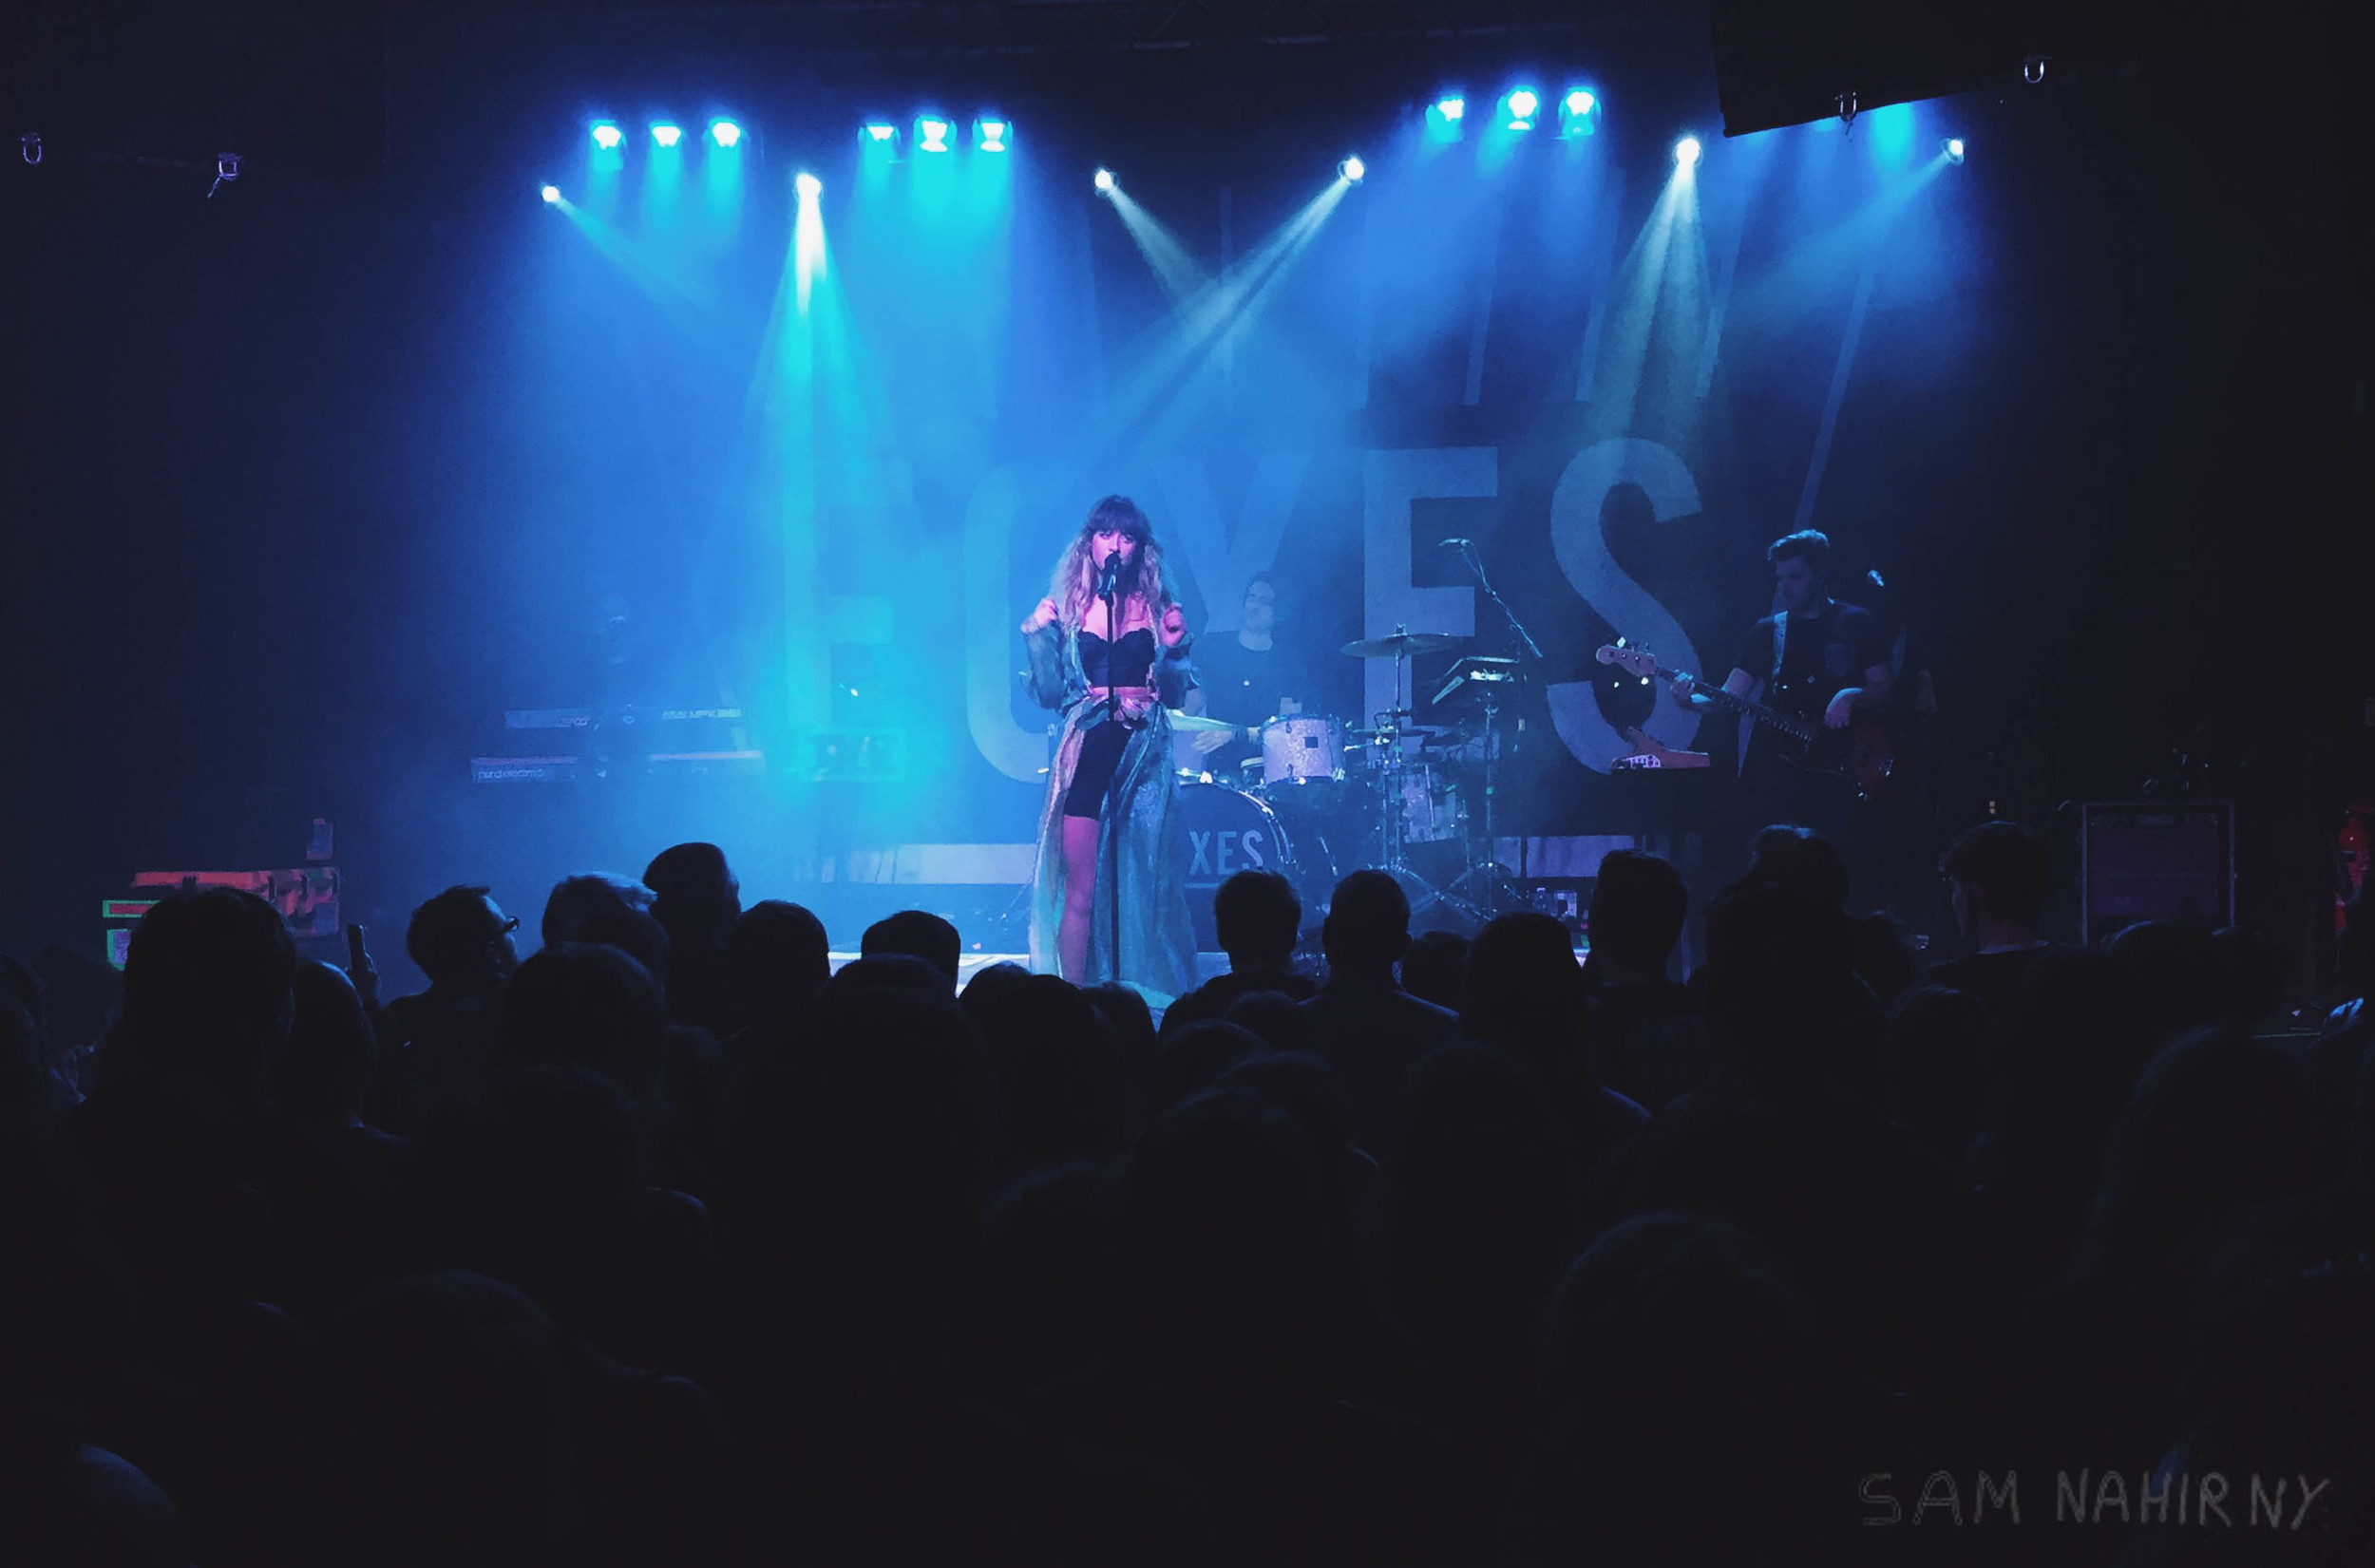 Foxes @ Rescue Rooms October 2015